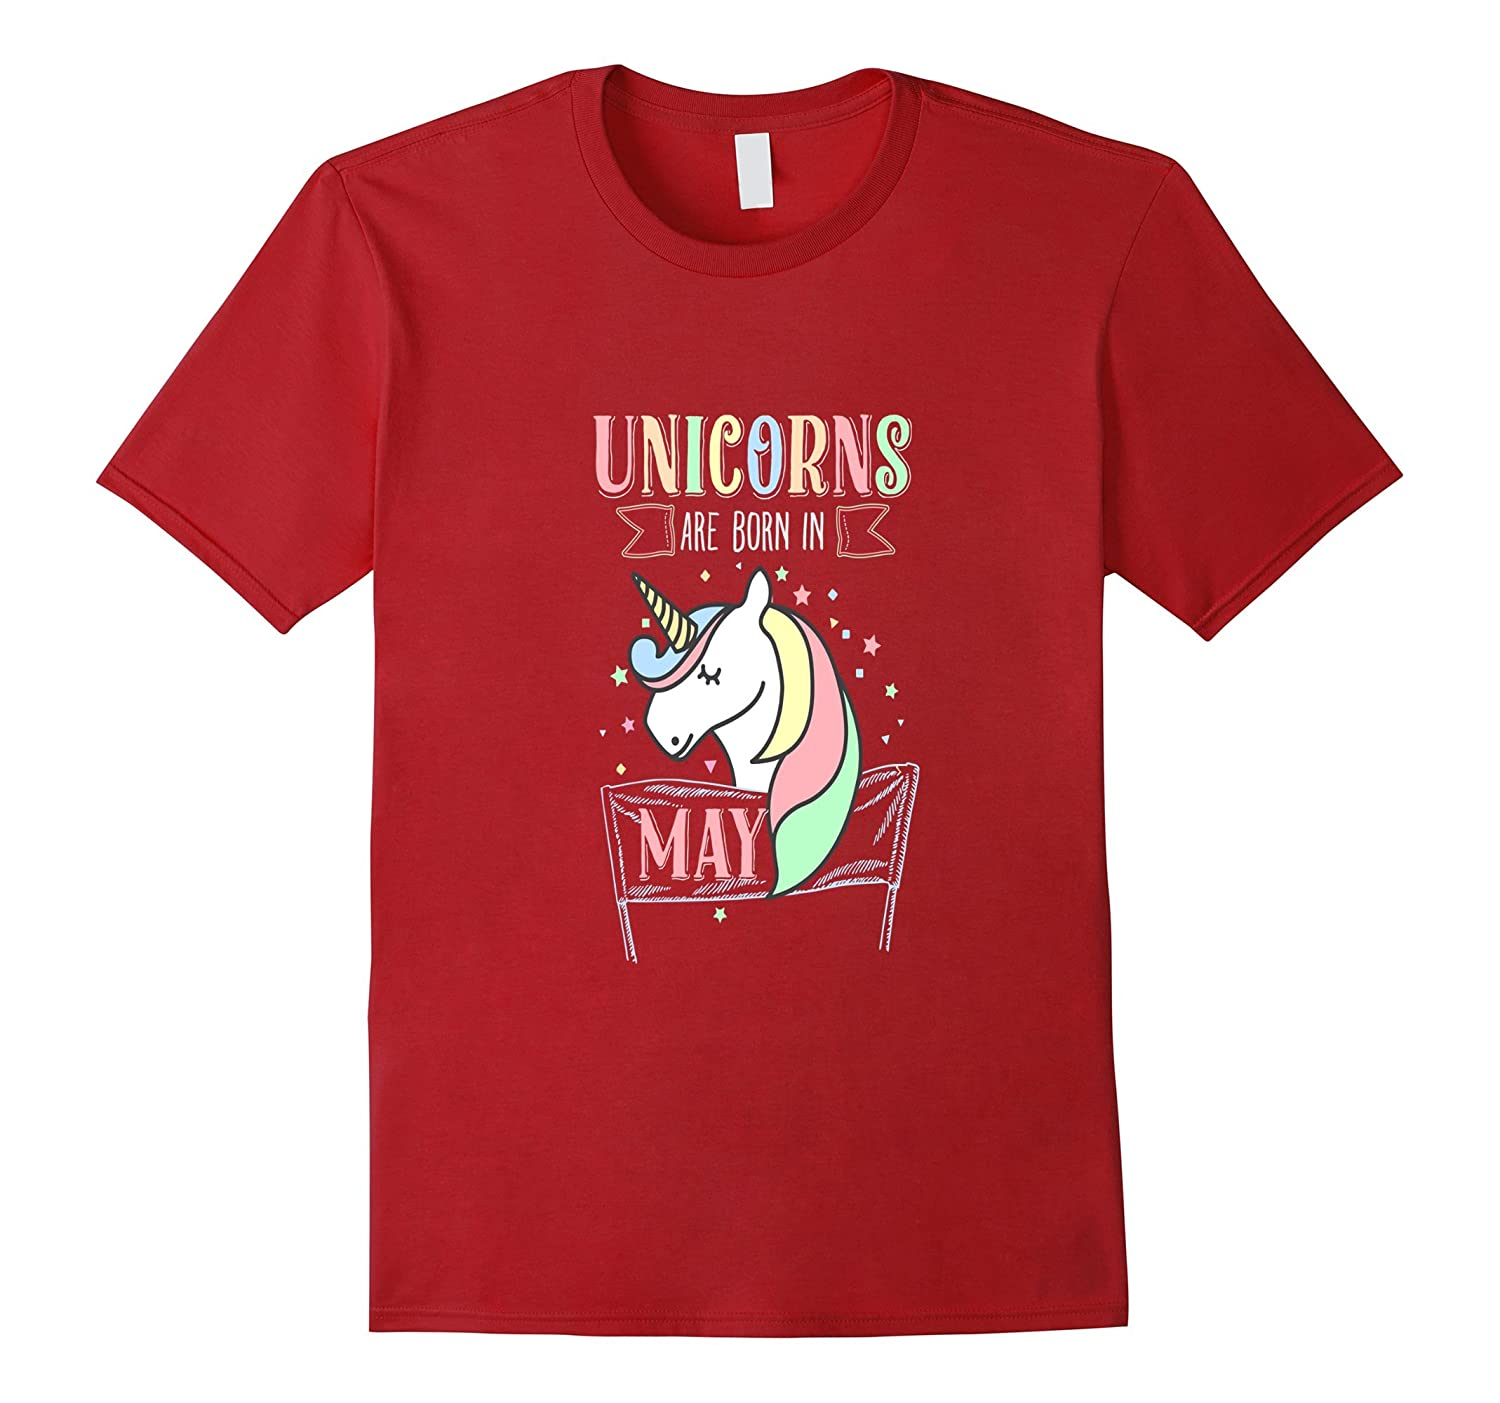 Best unicorns are born in may tshirts for LGBT community-CD